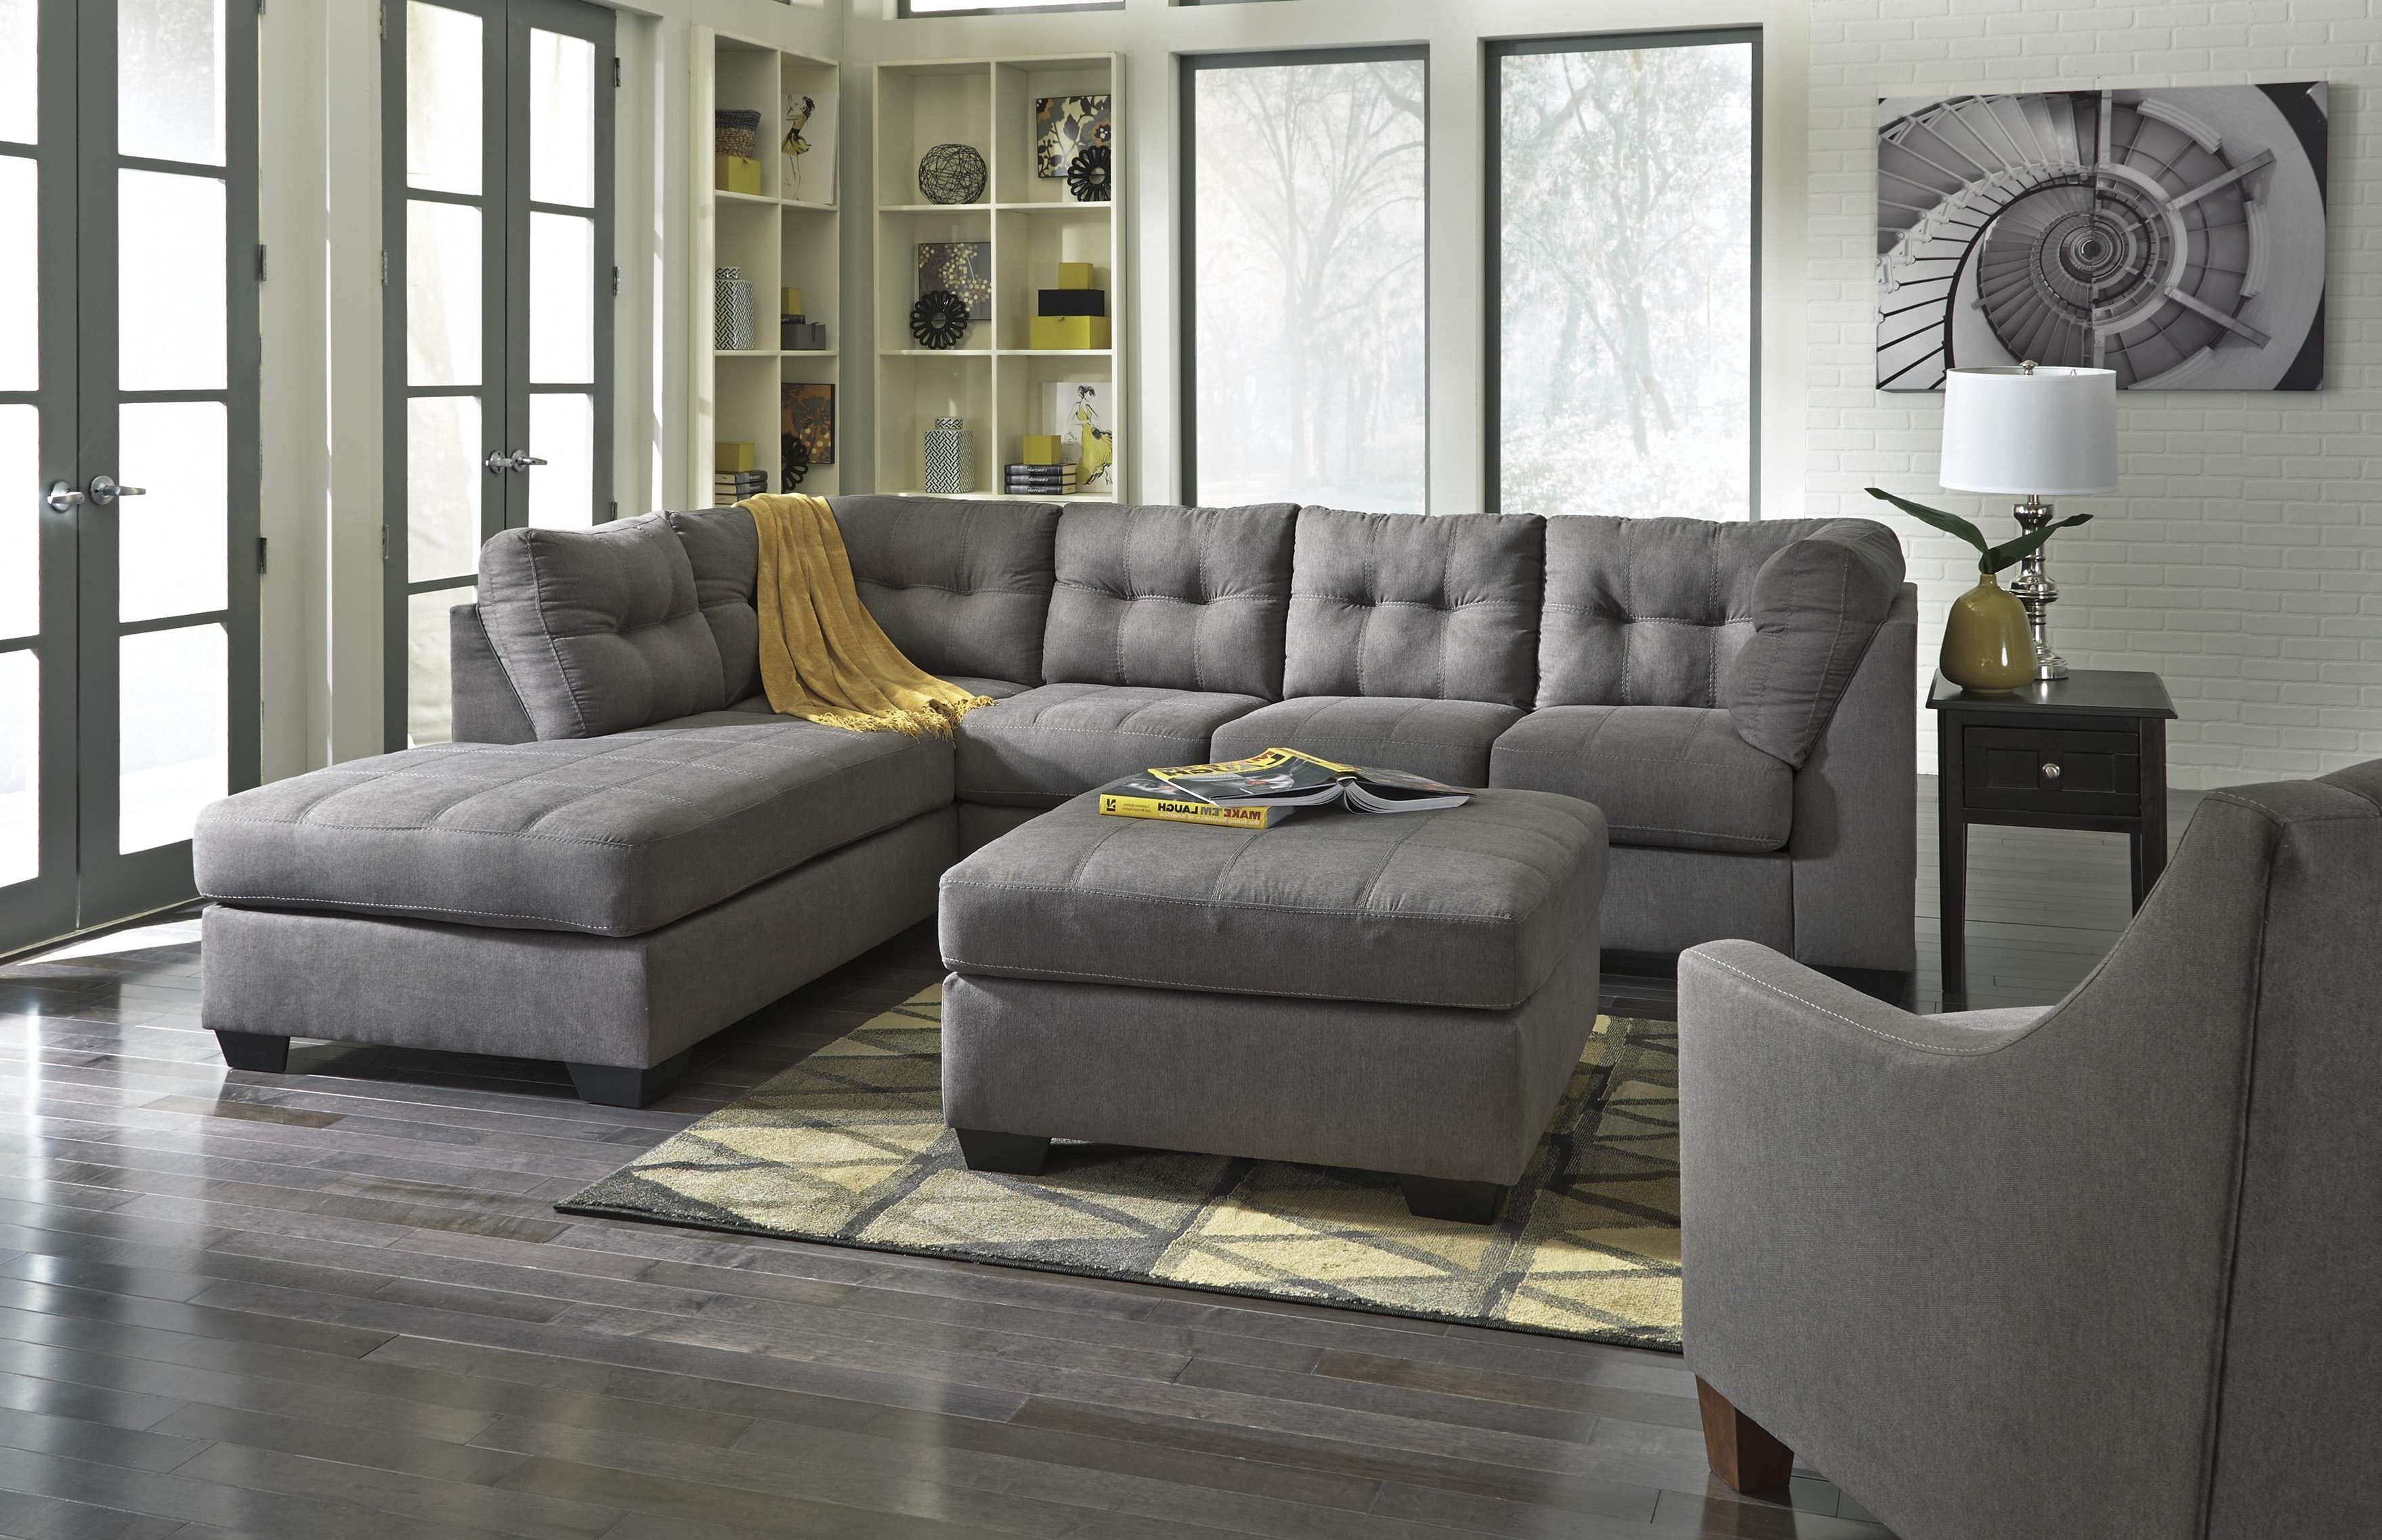 2 Piece Sectionals With Chaise Lounge Within Fashionable Benchcraft Maier – Charcoal 2 Piece Sectional With Left Chaise (View 5 of 15)